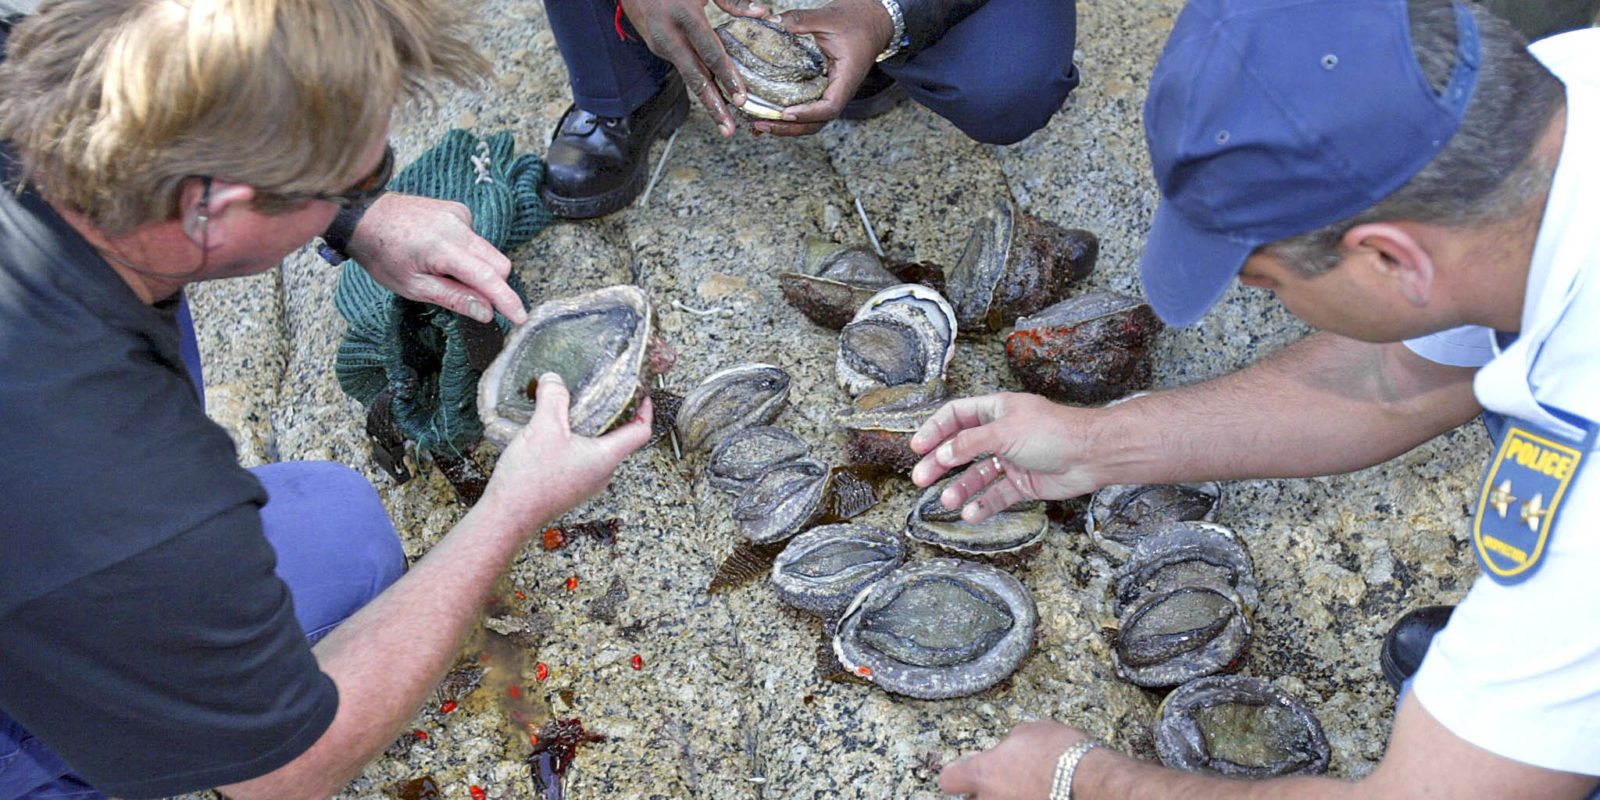 An influx of organised crime, concentrating on abalone poaching, has terrified Overstrand residents and put local police to the test. (Photo: Yunus Mohamed / Gallo)